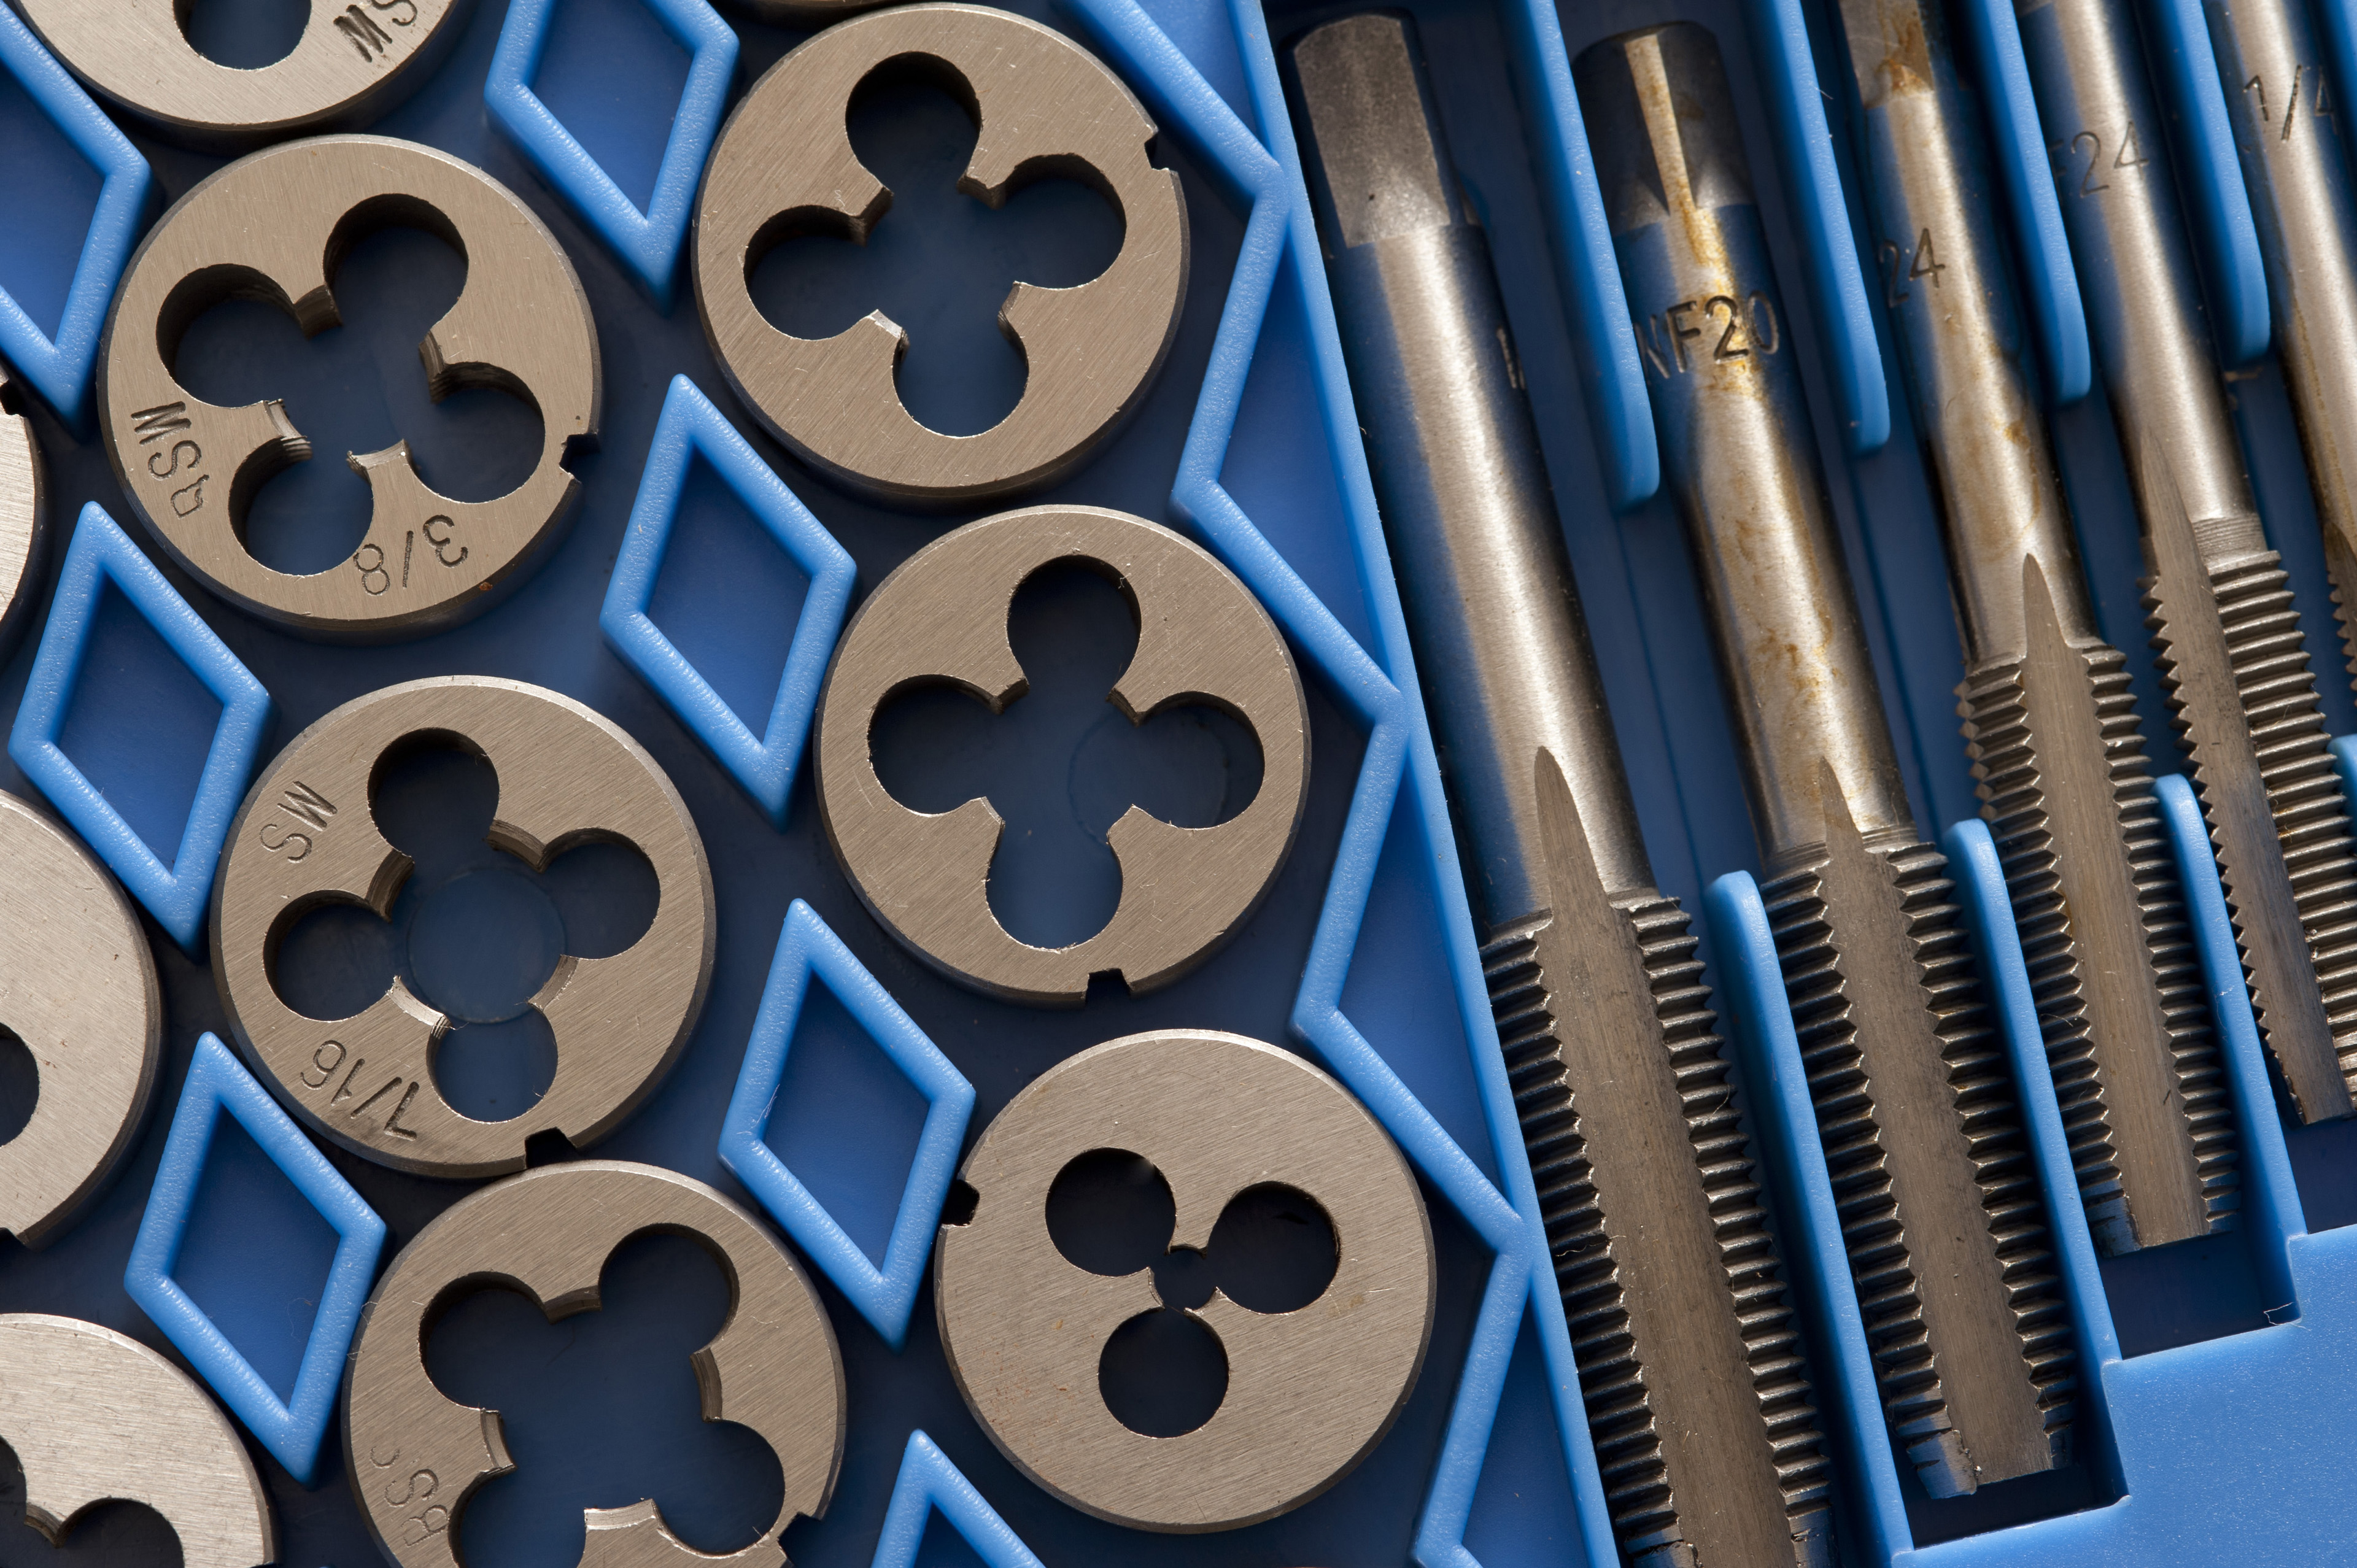 Set of taps and dies for producing screw threads, known as tapping and threading, in blue packaging, closeup view from above